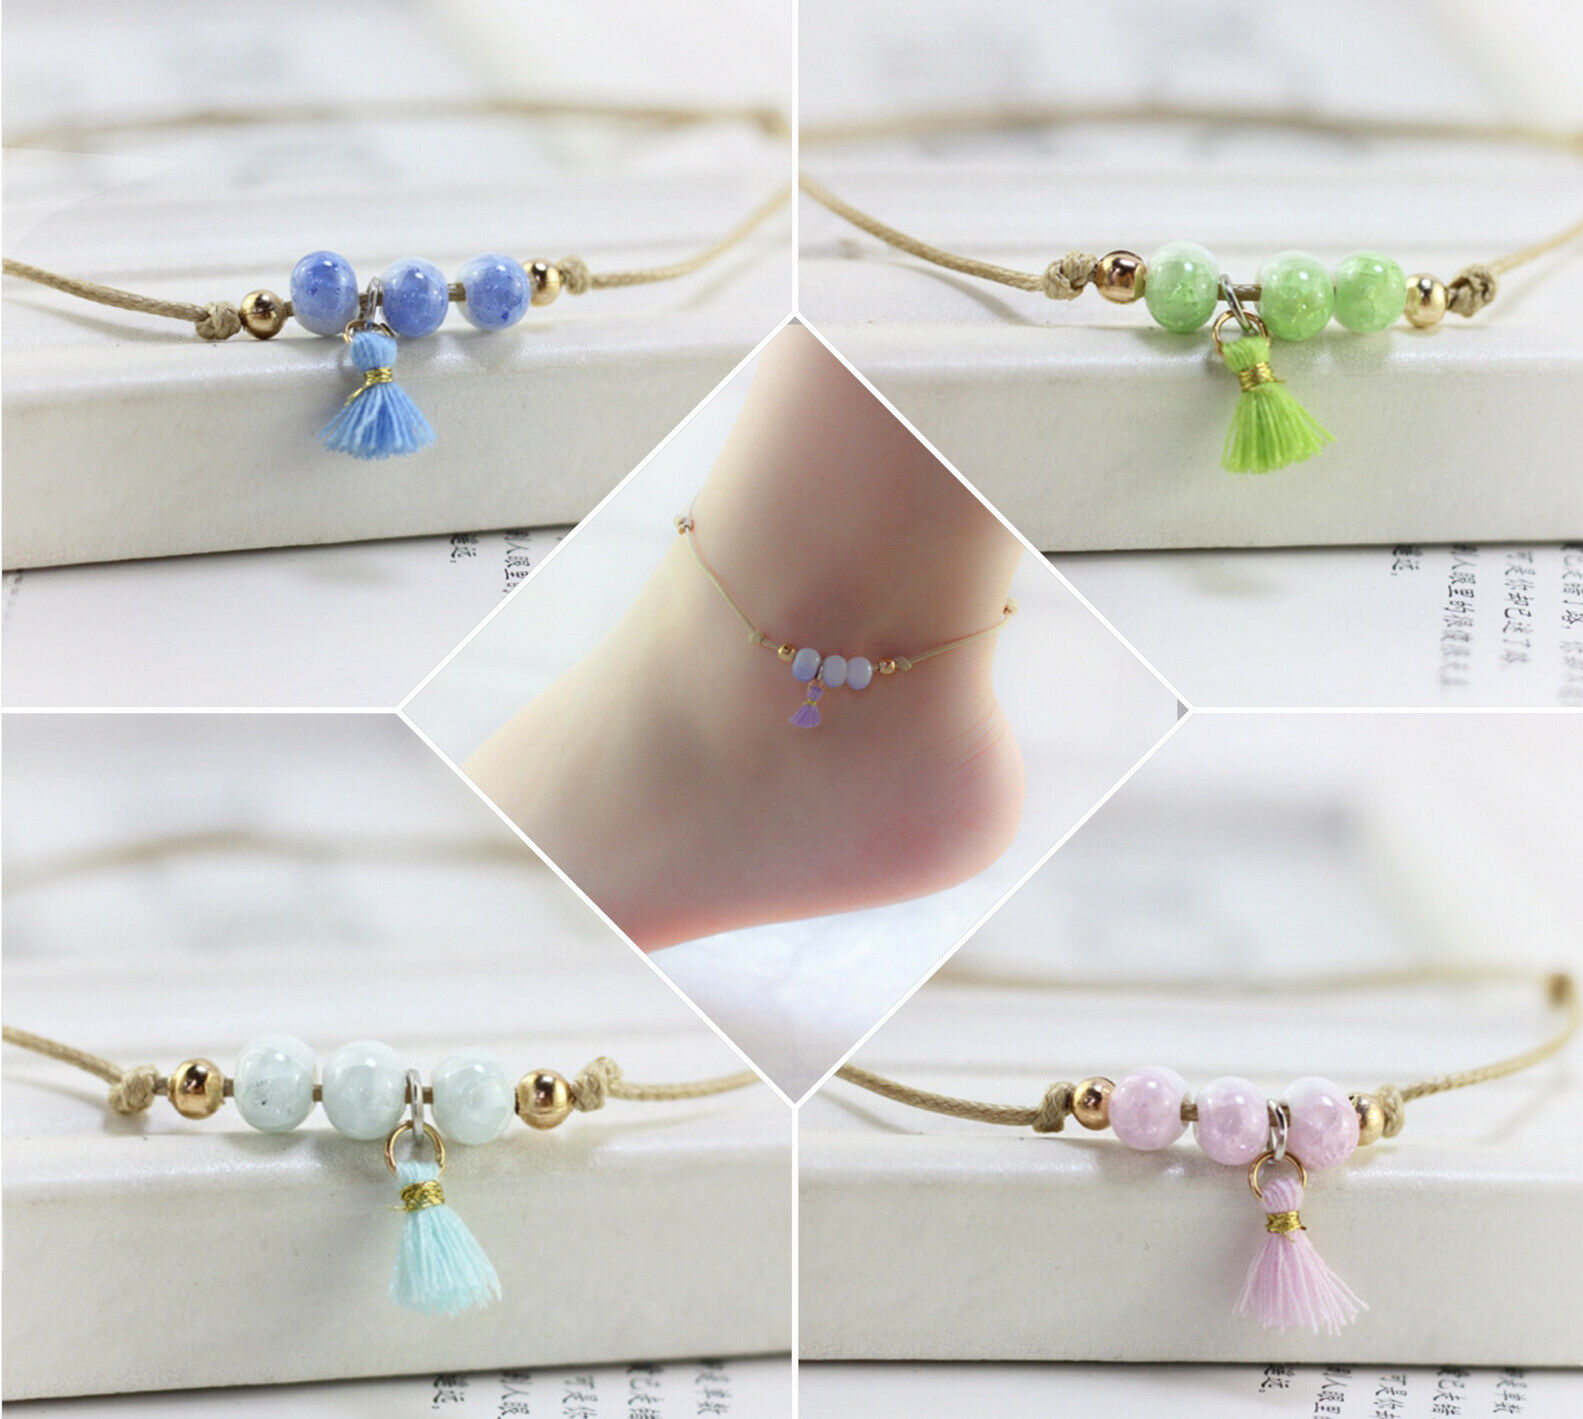 Anklet Ankle Bracelet Ceramic Bead Jewellery Gold Silver Adjustable Foot Chain